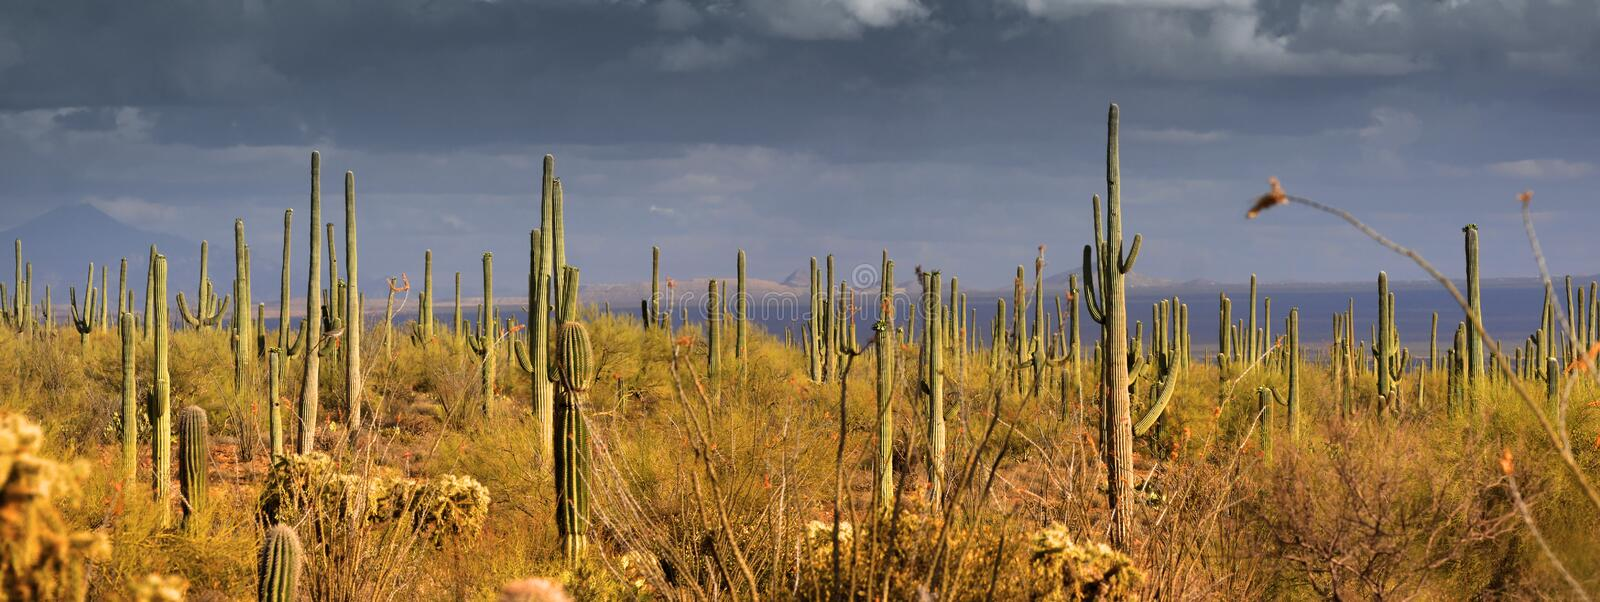 Panorama do Saguaro foto de stock